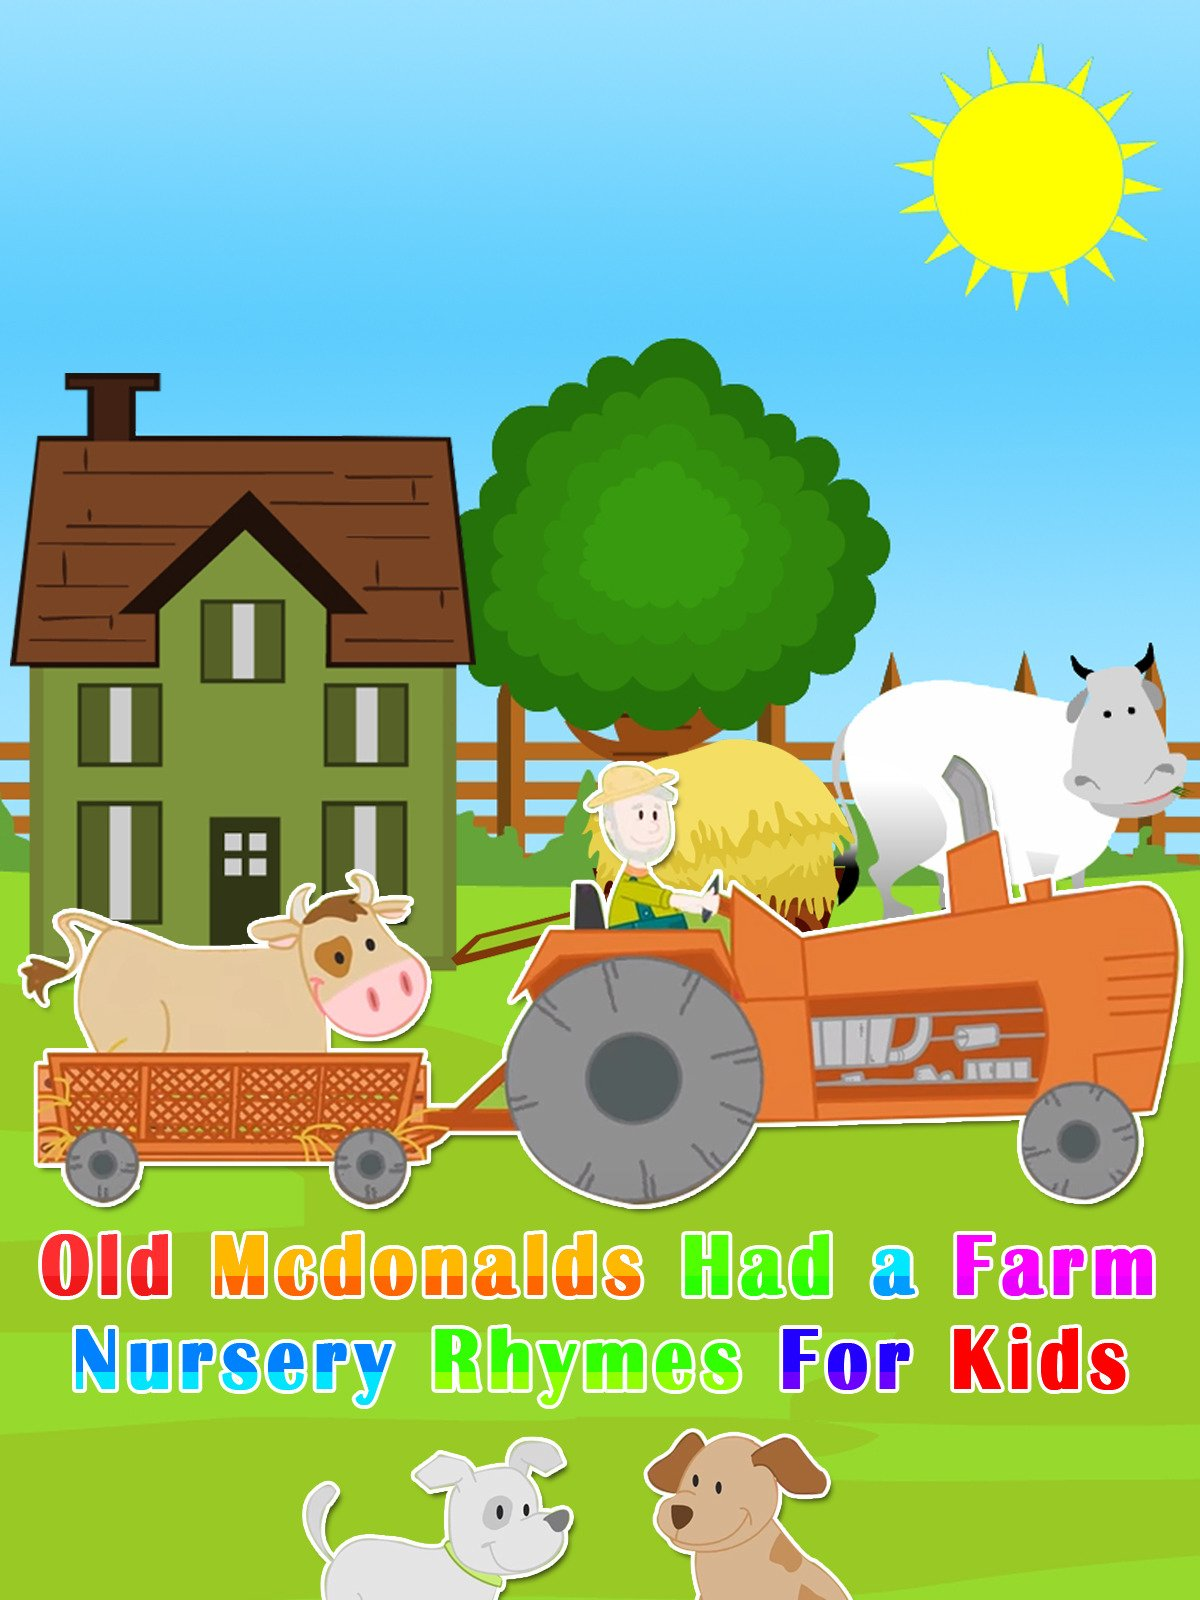 Old Mcdonalds Had a Farm Nursery Rhymes For Kids